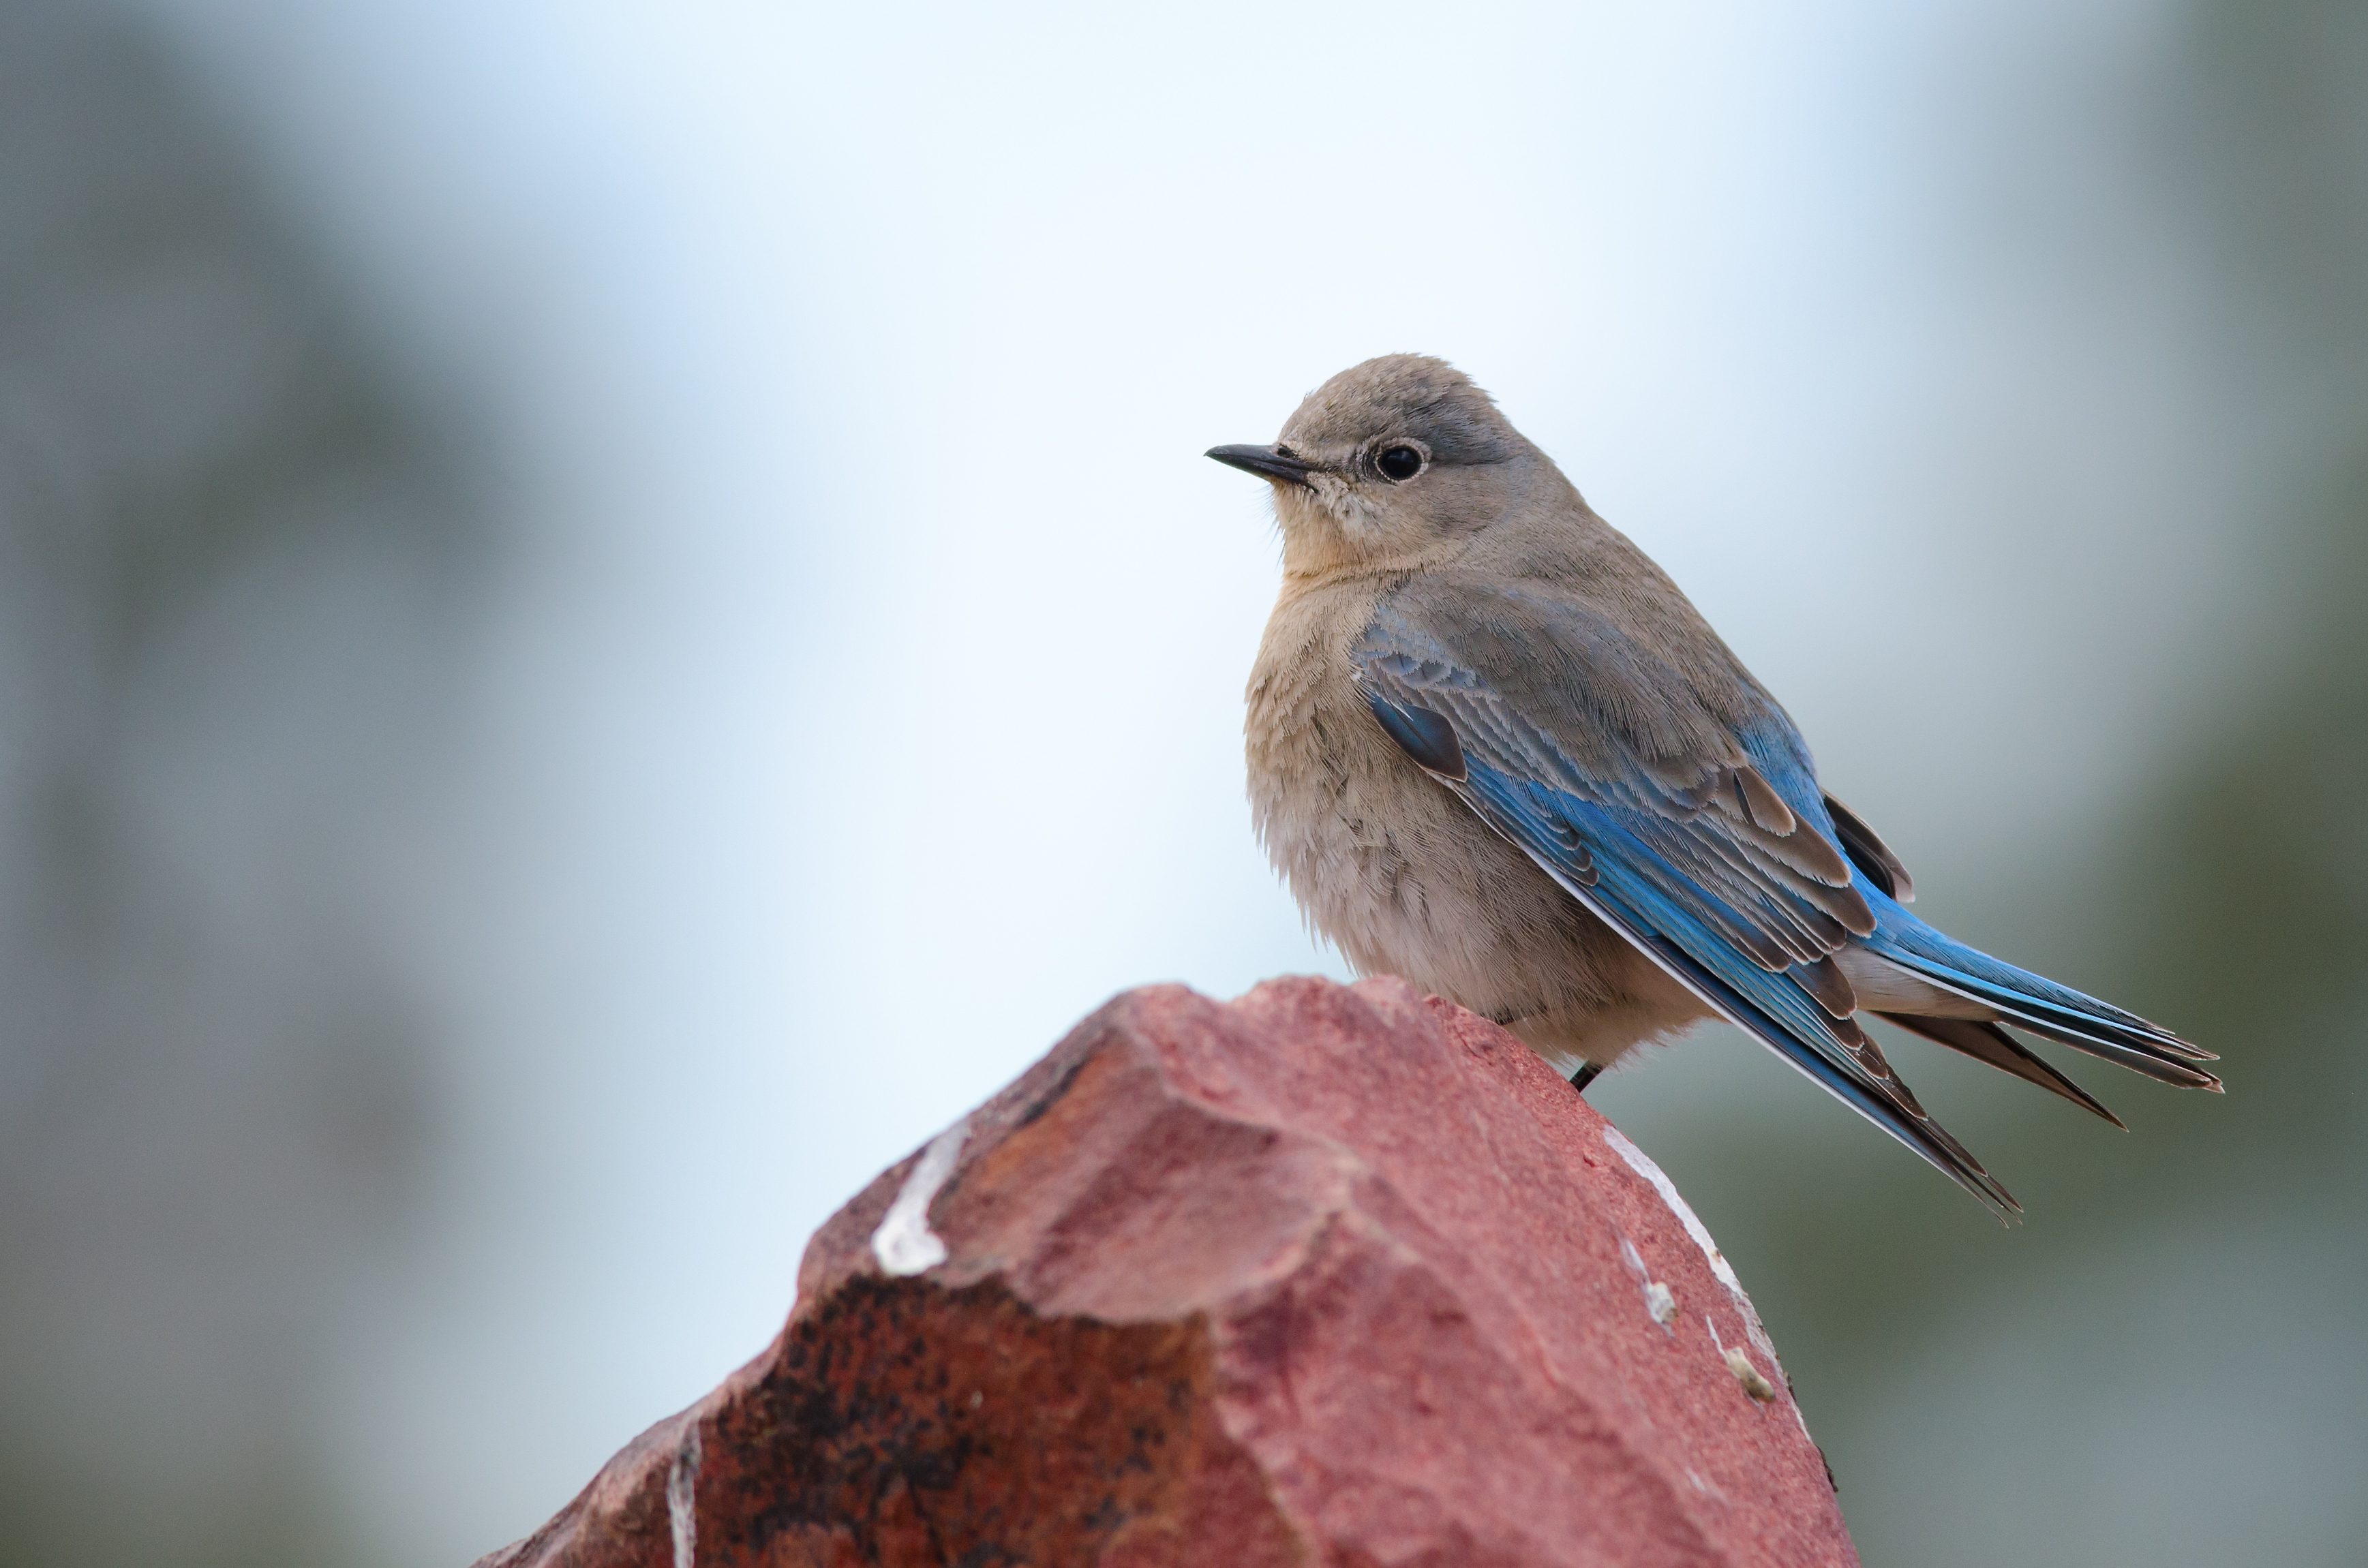 Mountain bluebird perched on stone. Official state bird of Idaho and Nevada.